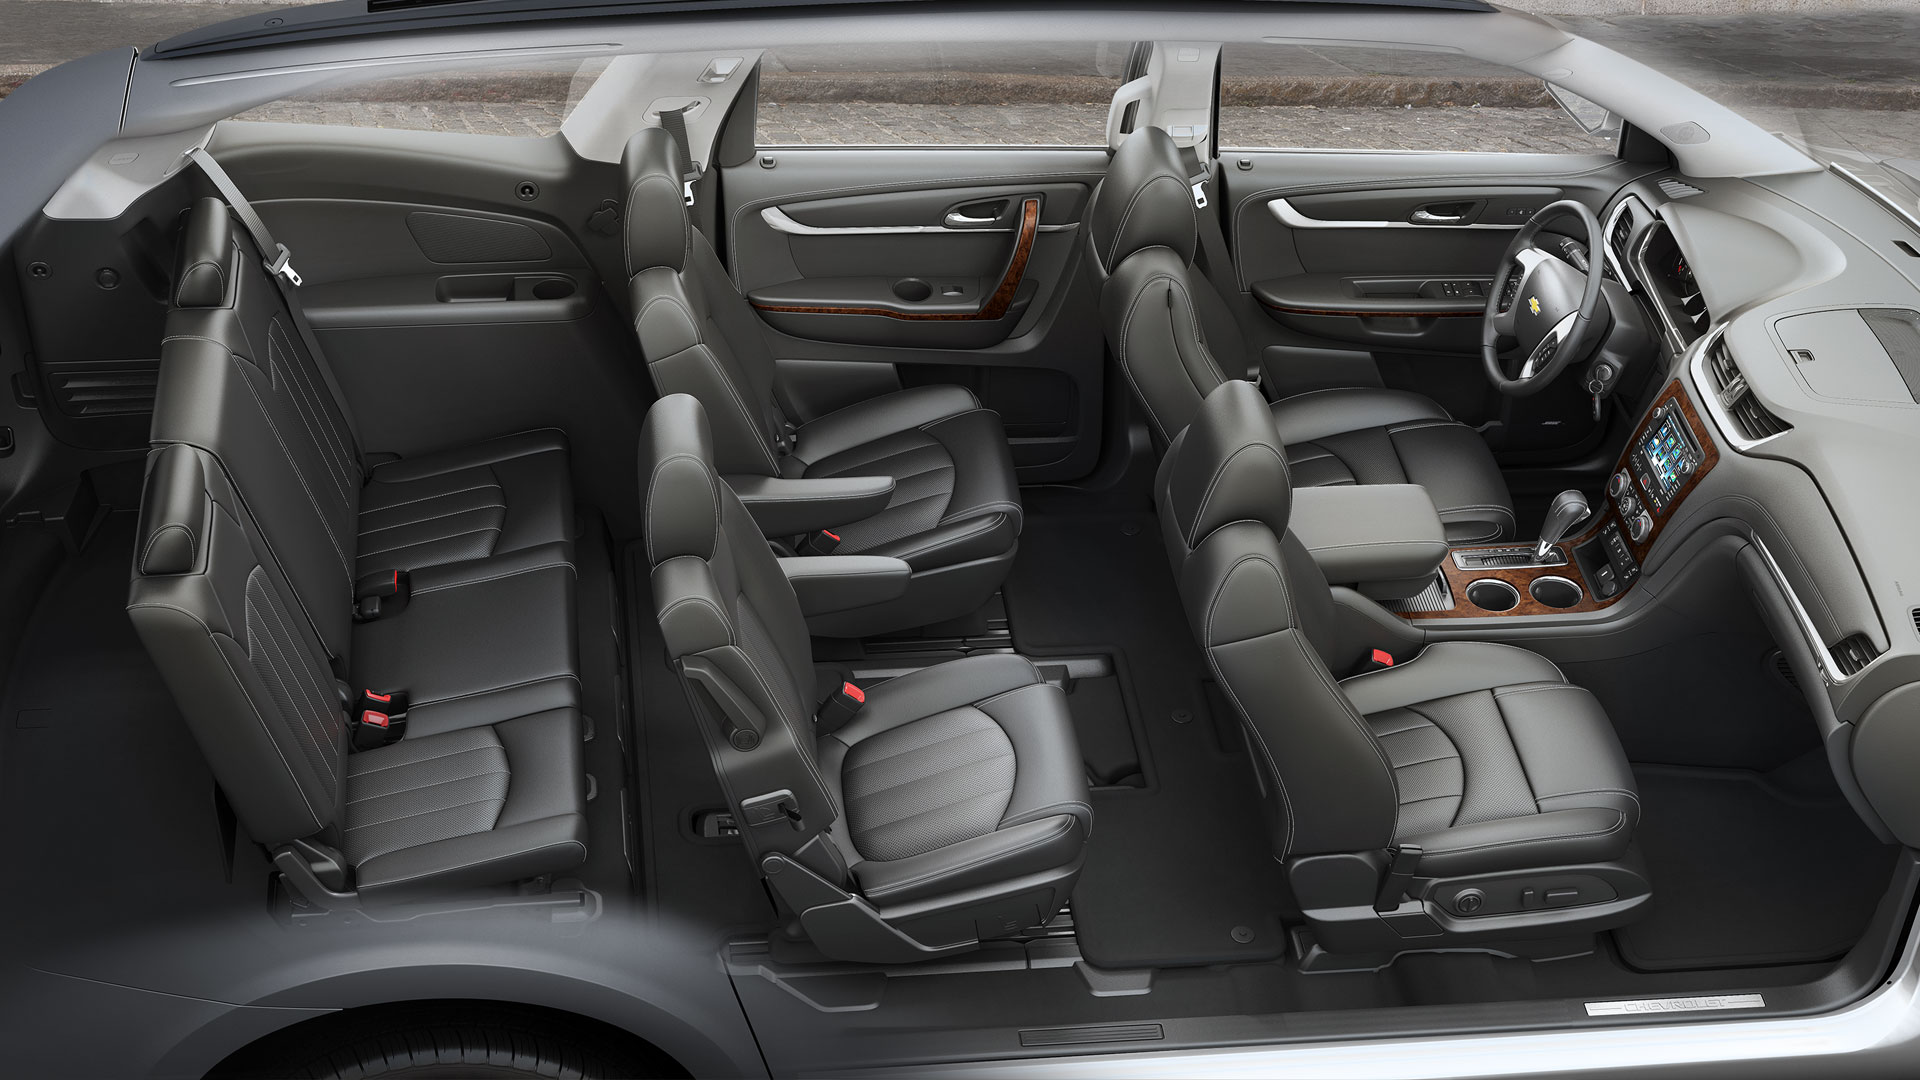 2010 chevrolet equinox interior dimensions. Black Bedroom Furniture Sets. Home Design Ideas